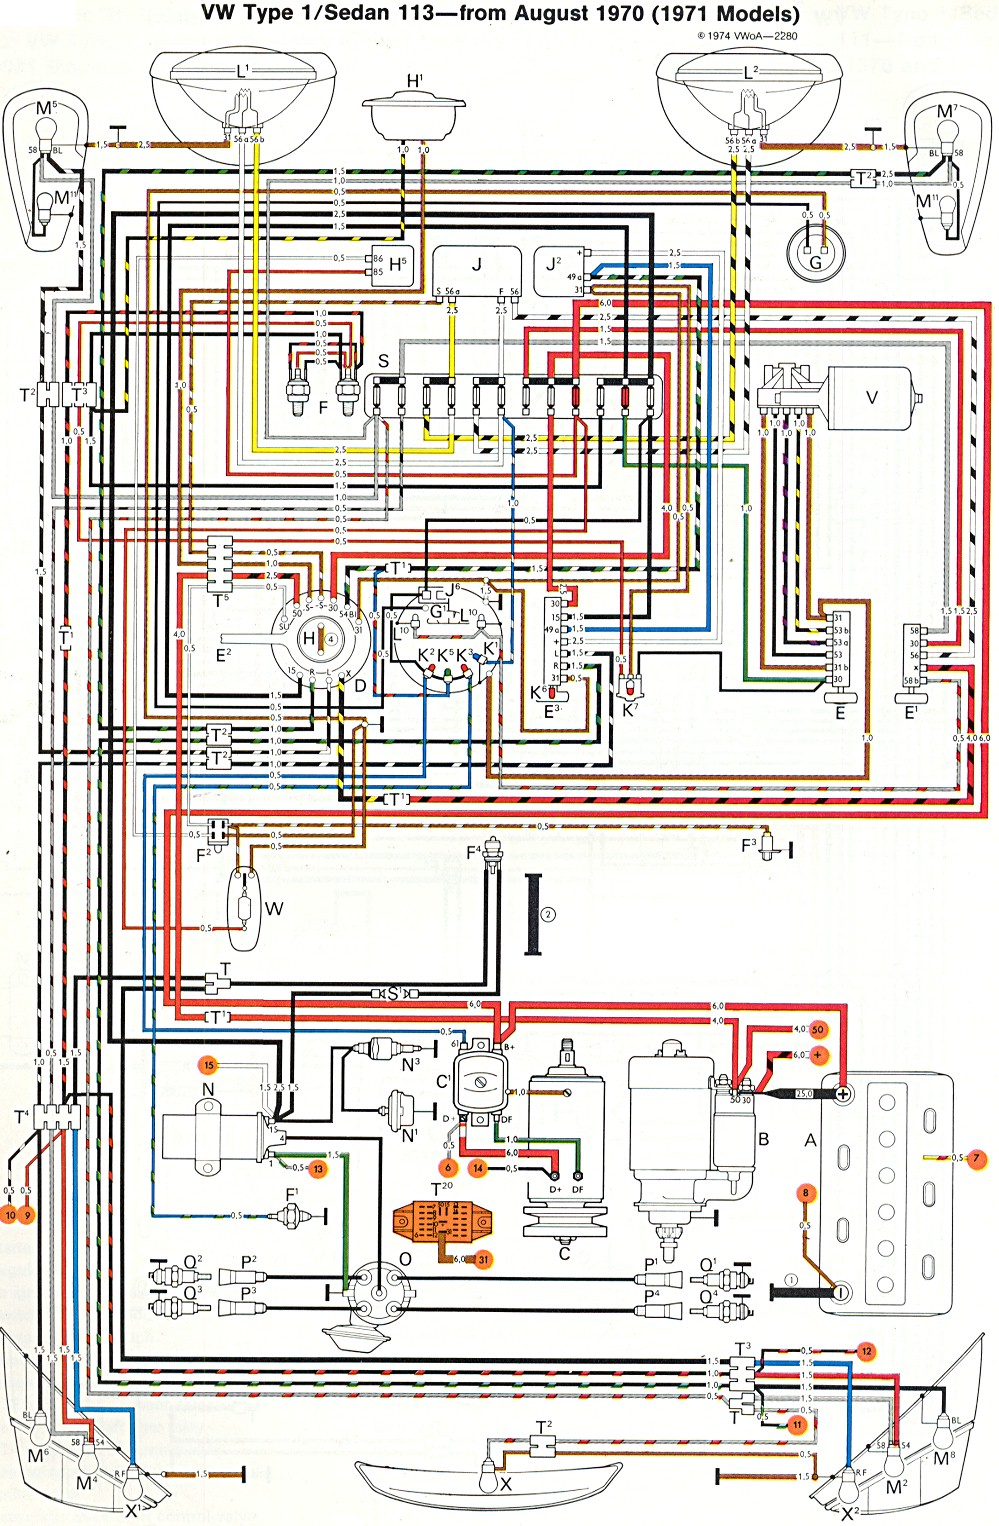 bug_super_71 71 vw beetle wiring diagram 71 wiring diagrams instruction 1974 vw bug fuse box diagram at n-0.co